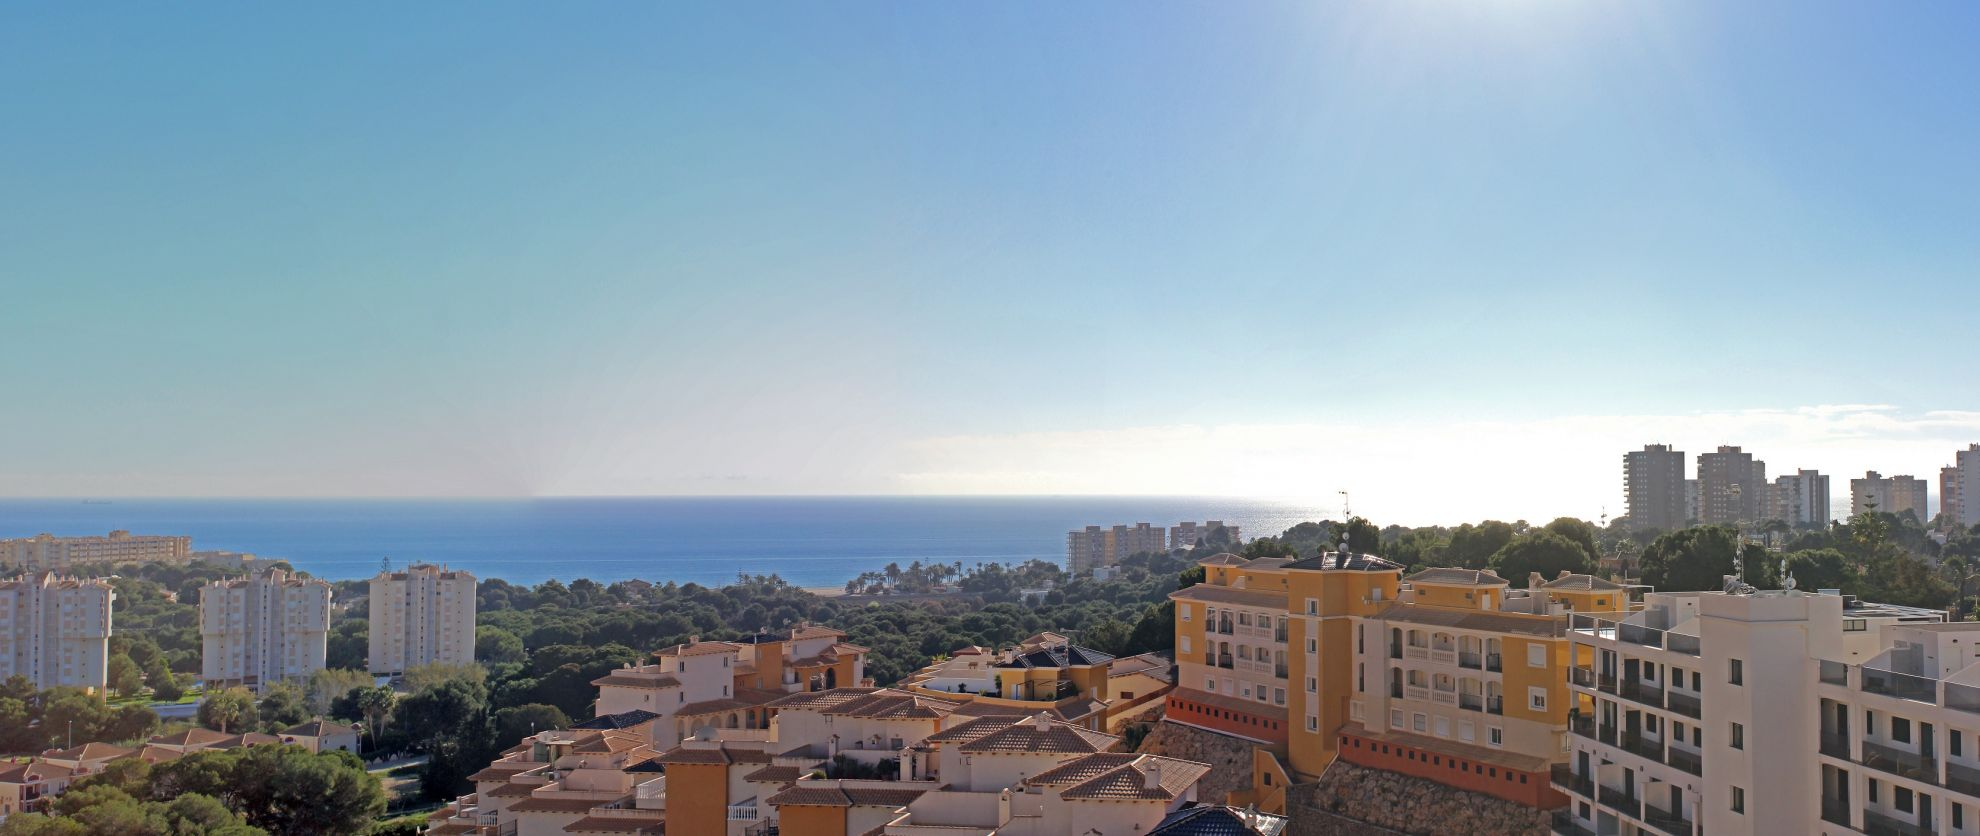 Apartments in Dehesa de campoamor 20